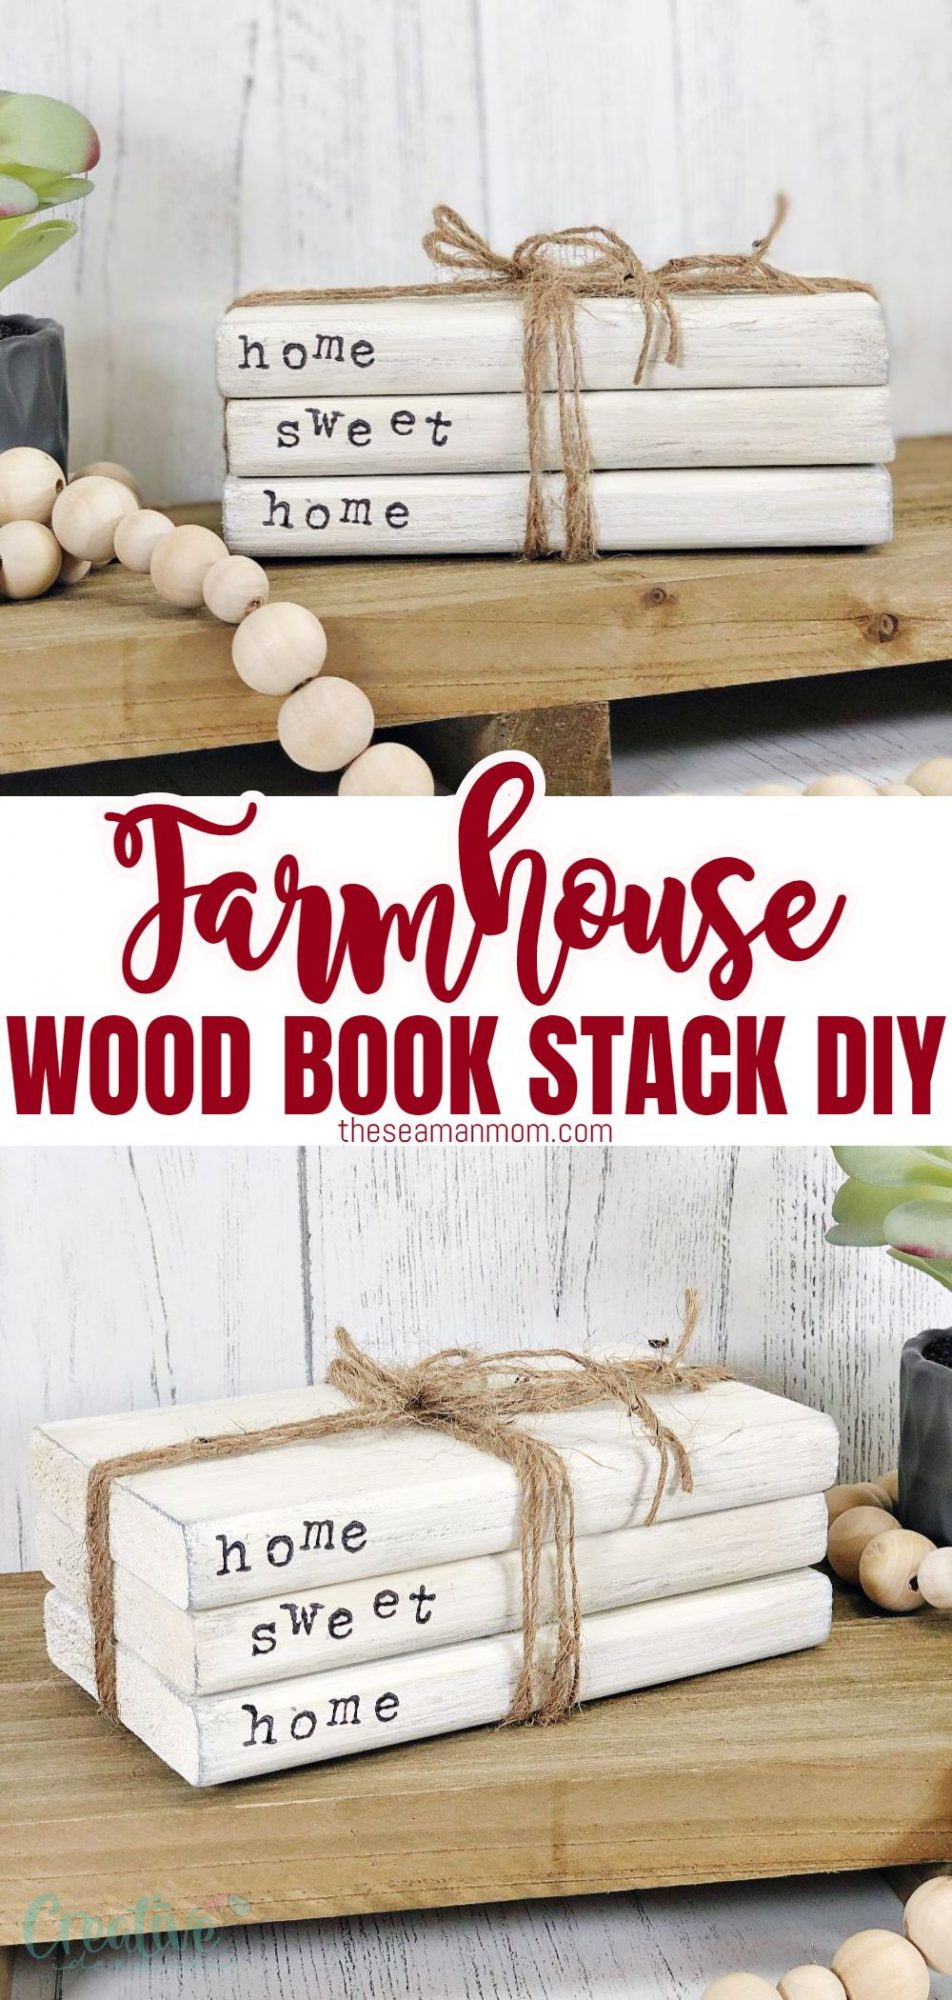 Photo collage of farmhouse book stack made with wood and stamped letters